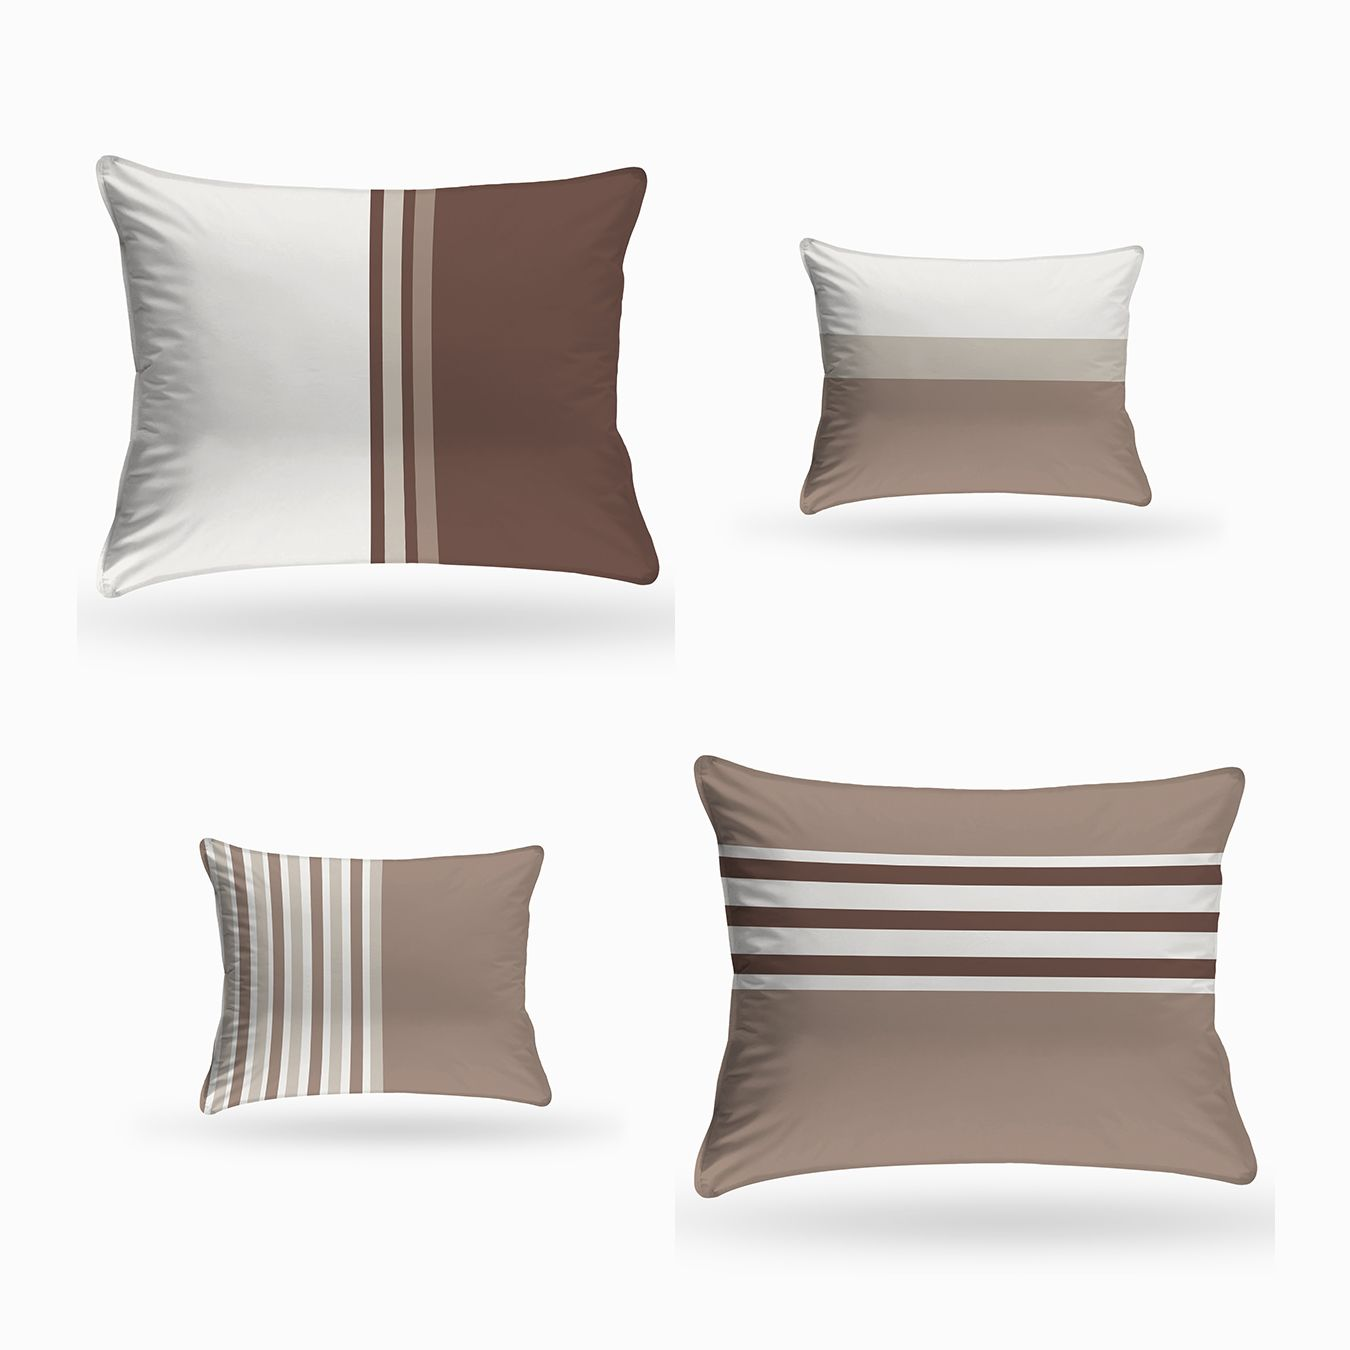 Beatris Veres Design Shop Redbubble Pillows Minimalist Pillows Trending Decor